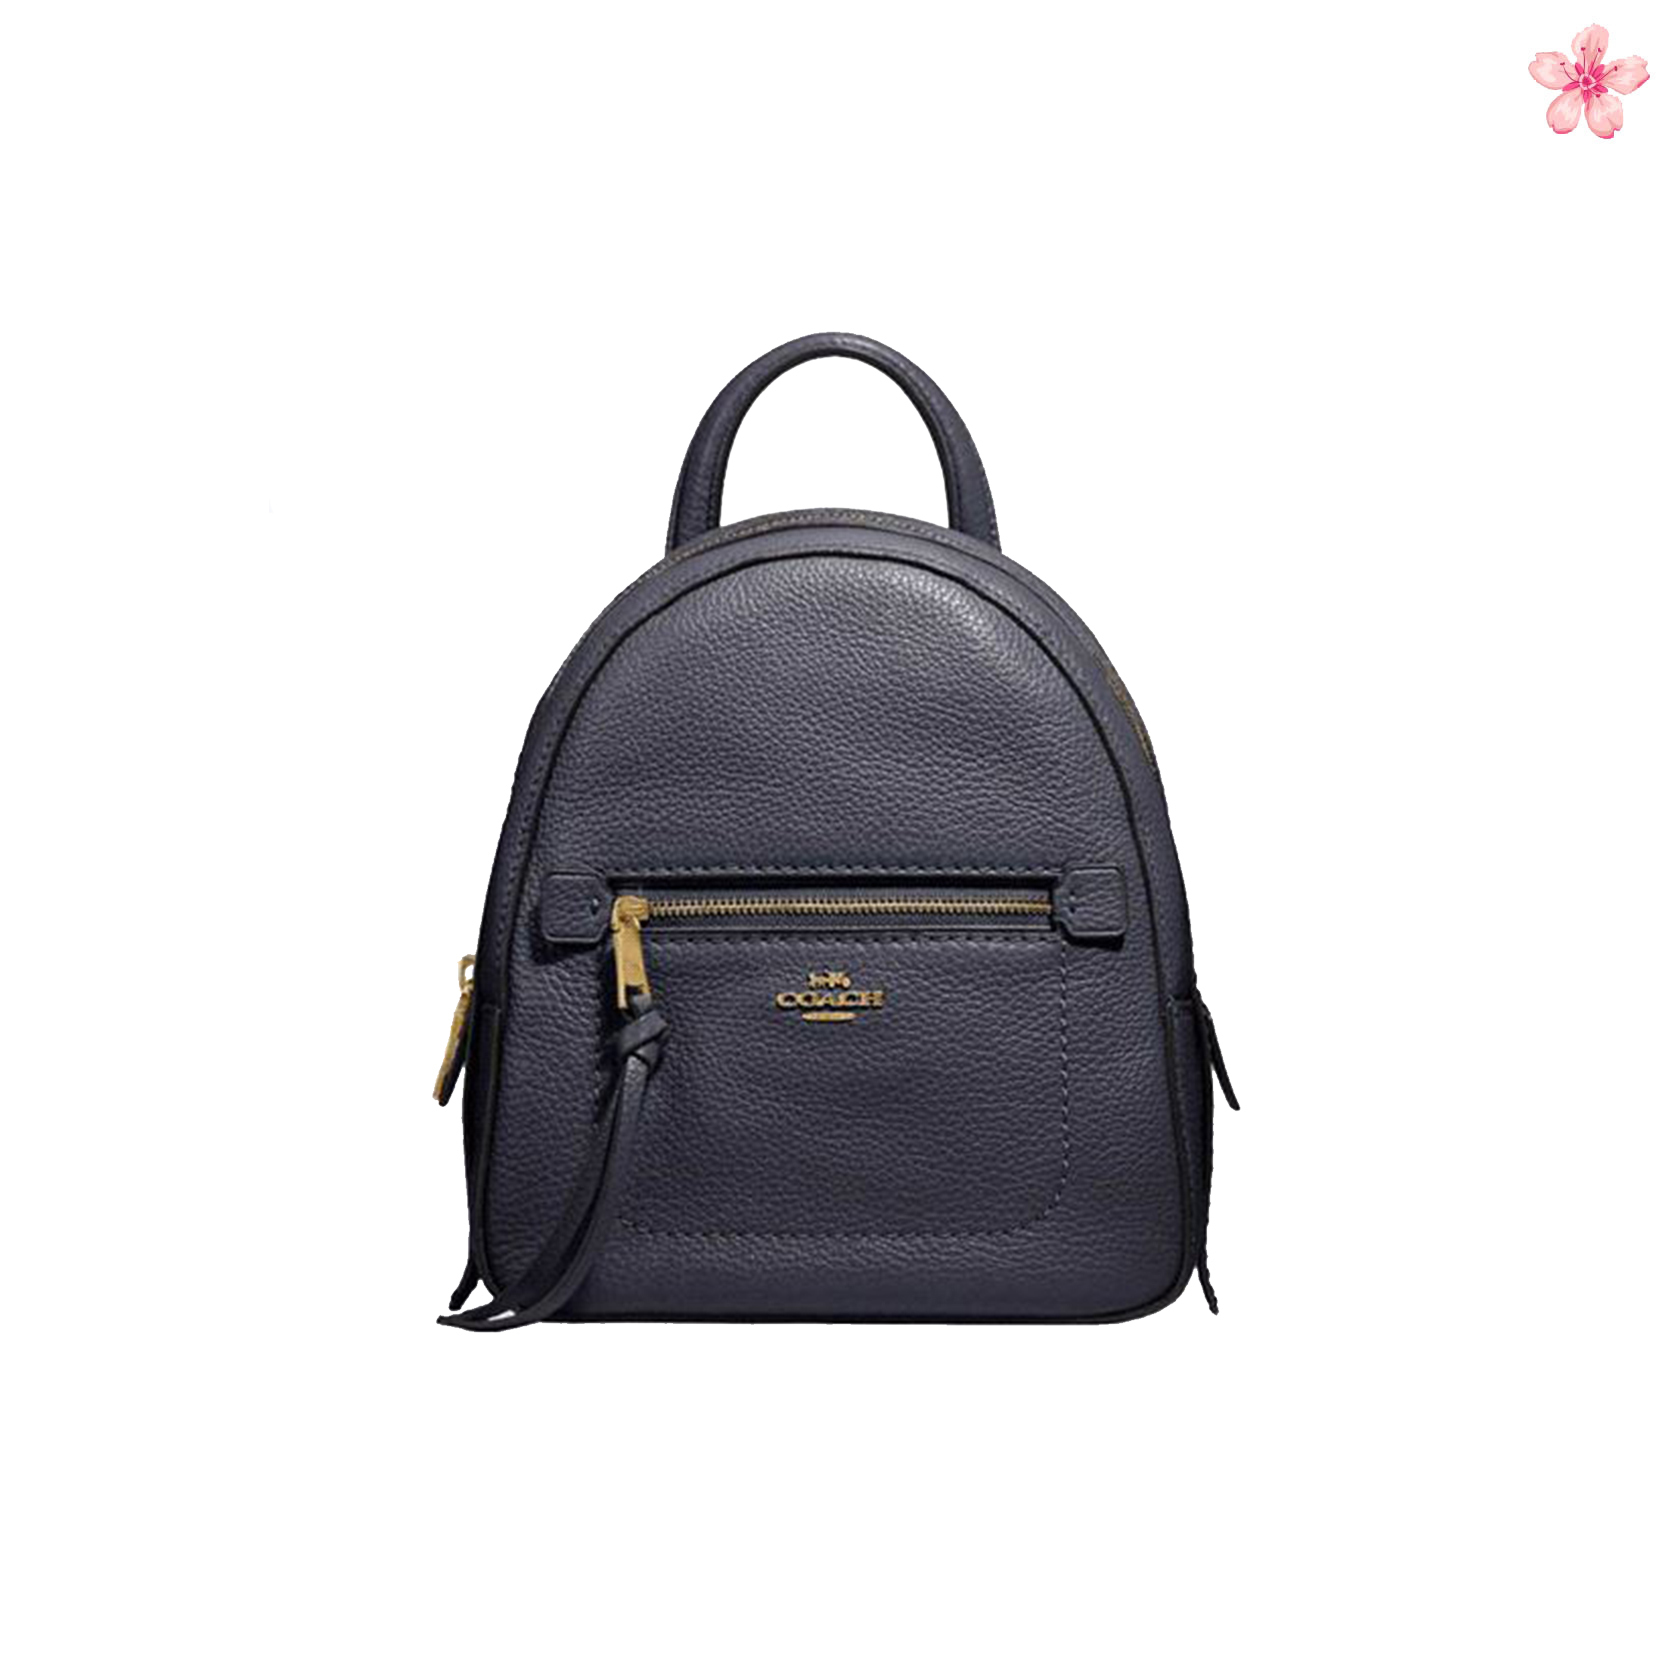 NWT Coach F30530 Andi Backpack In Pebble Leather Black//Gold